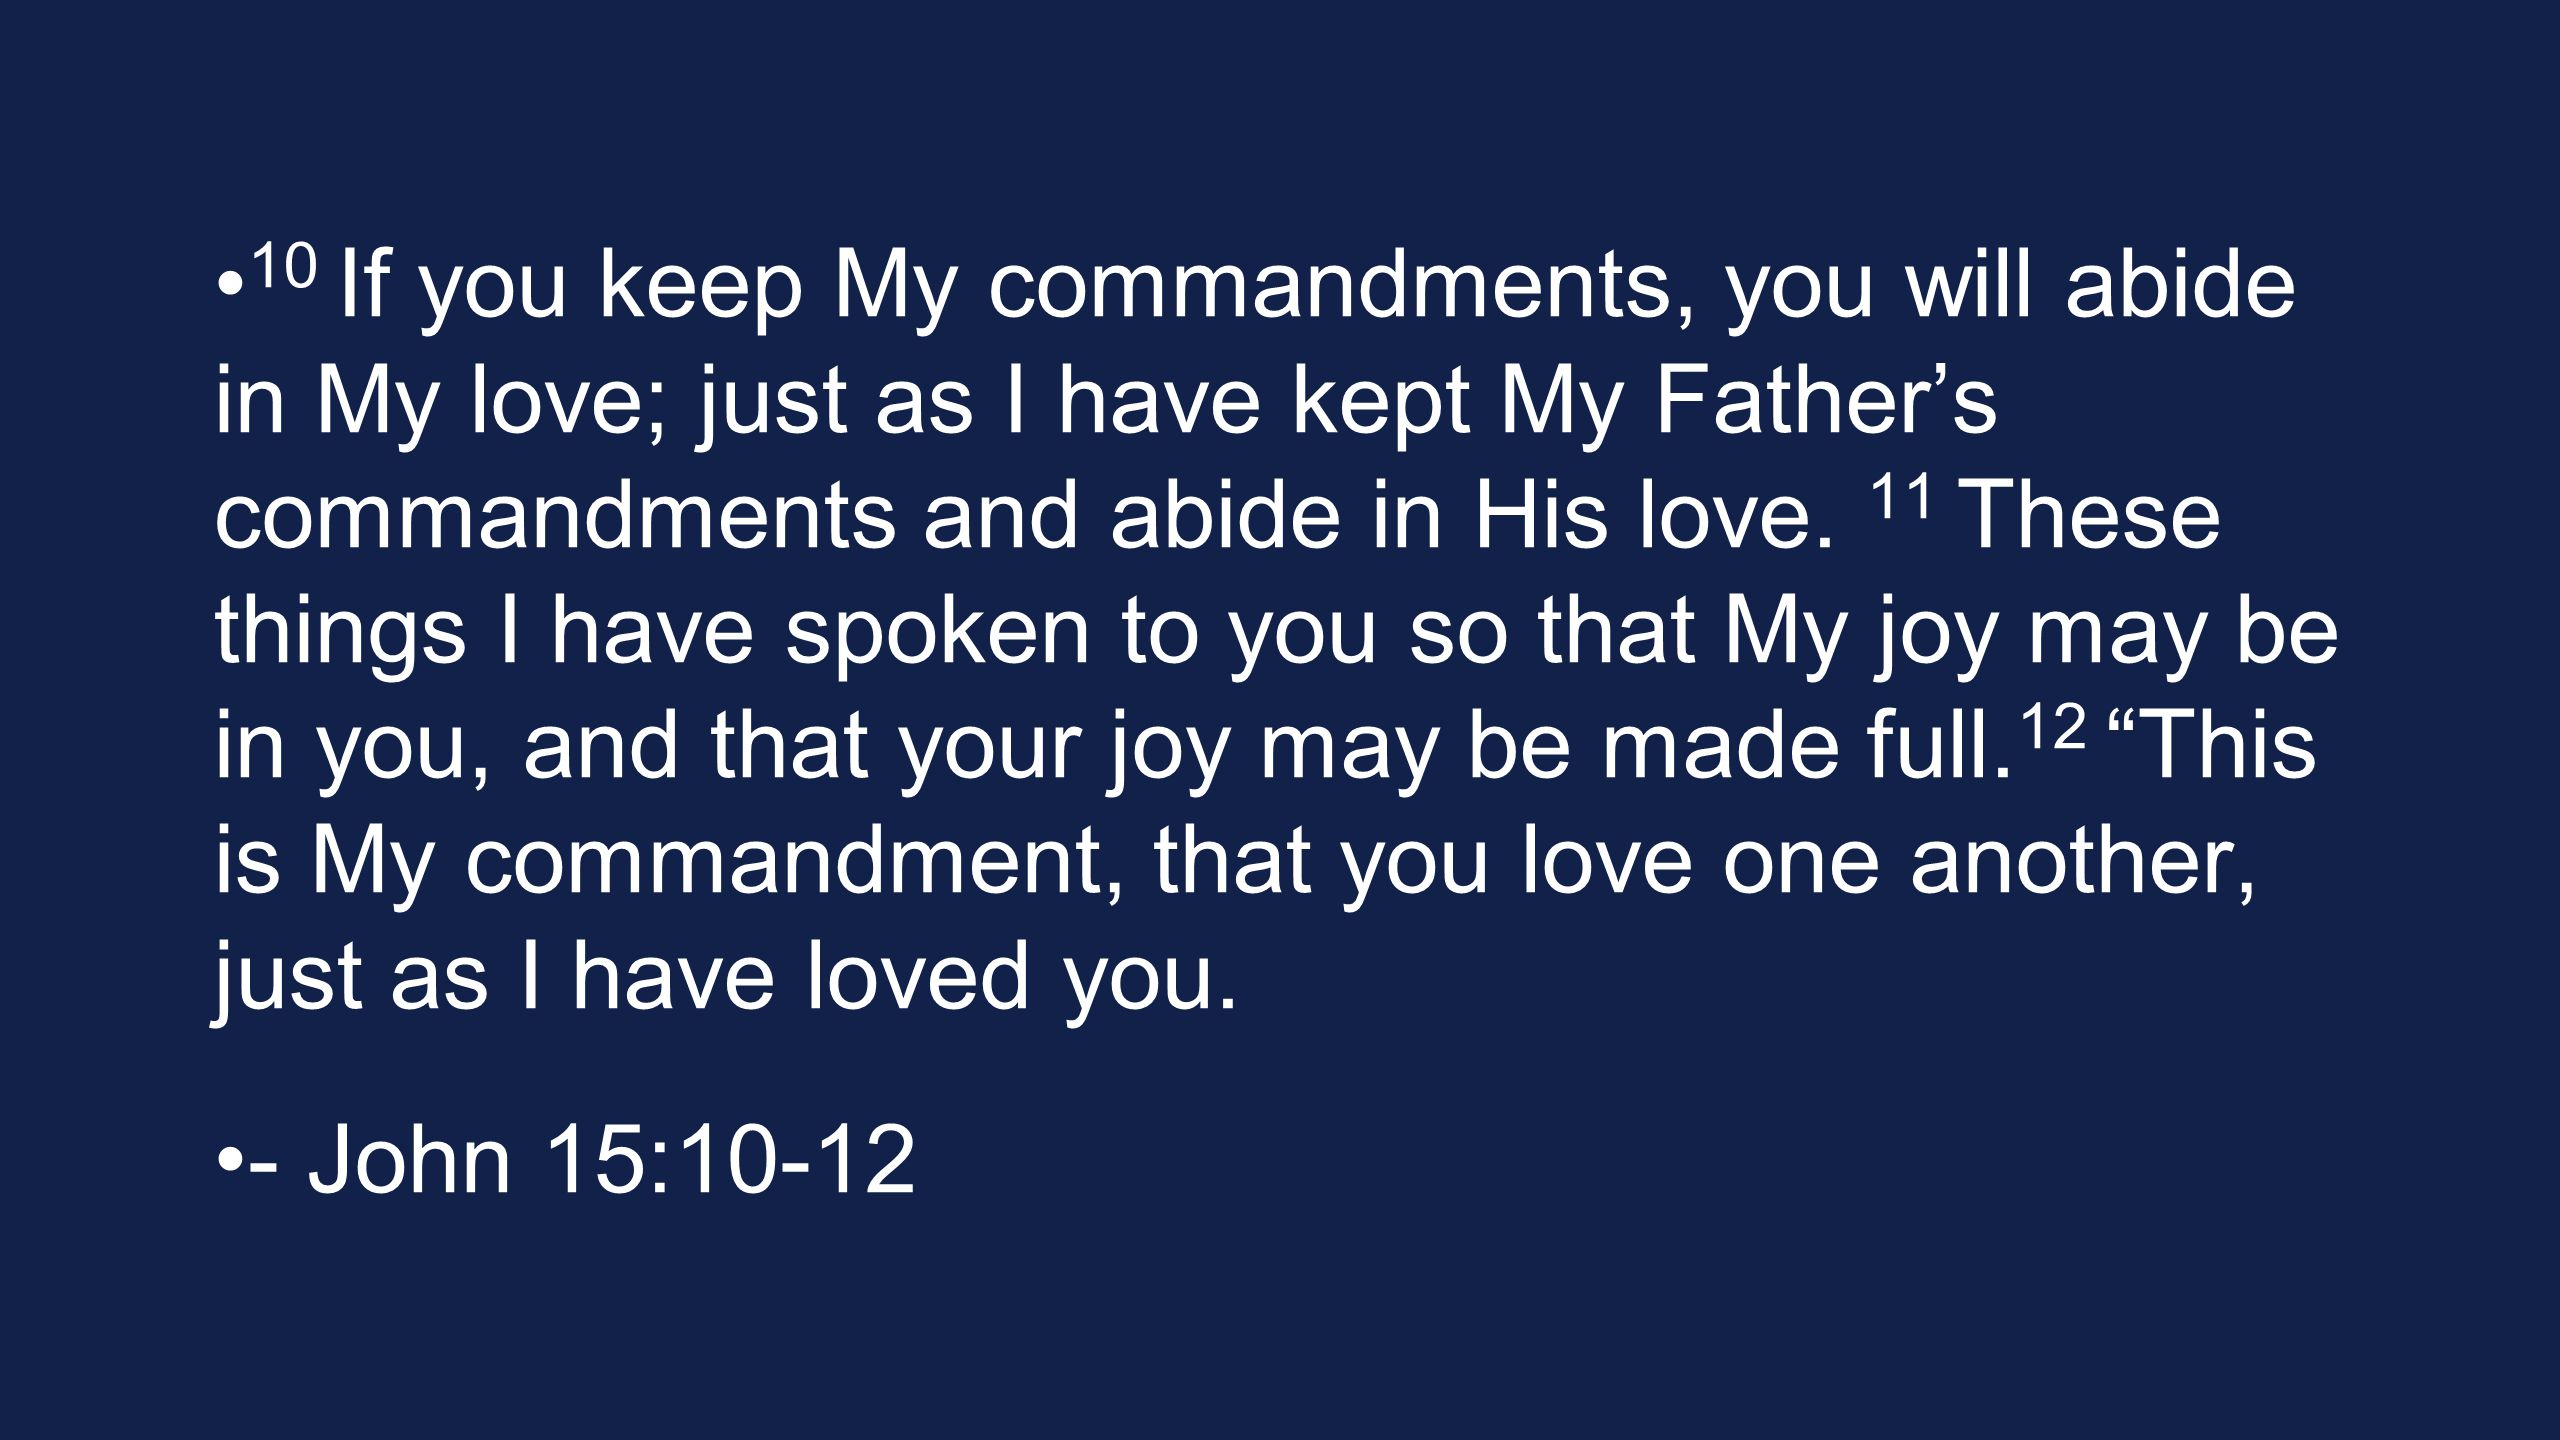 10 If you keep My commandments, you will abide in My love; just as I have kept My Father's commandments and abide in His love.